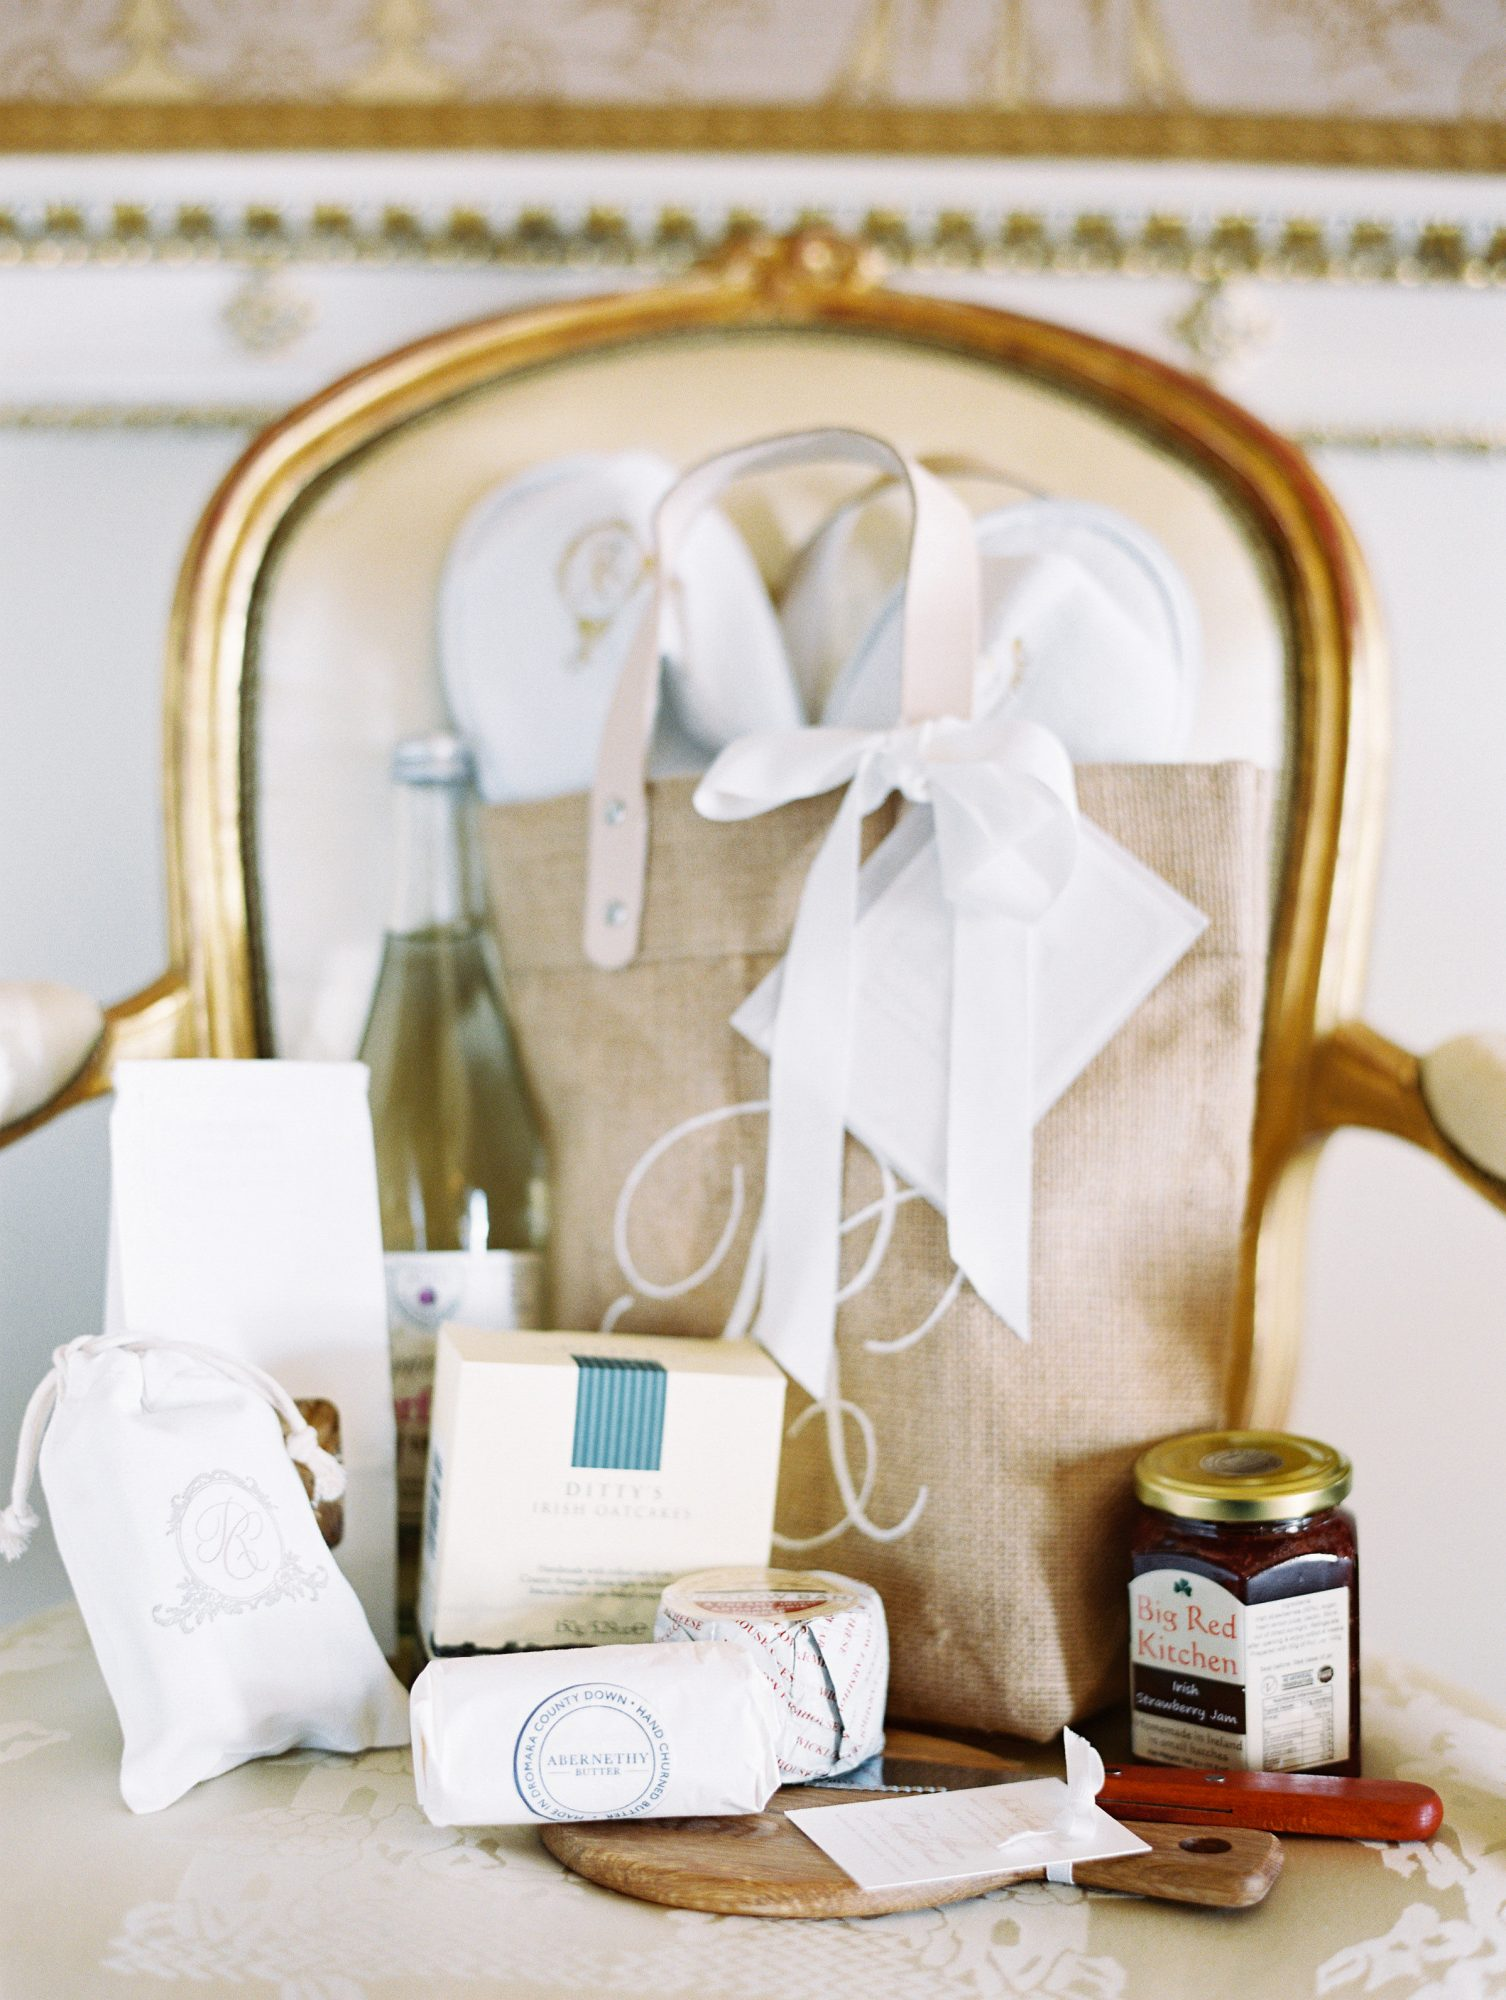 ramsey charles ireland wedding welcome bag and contents sitting on chair